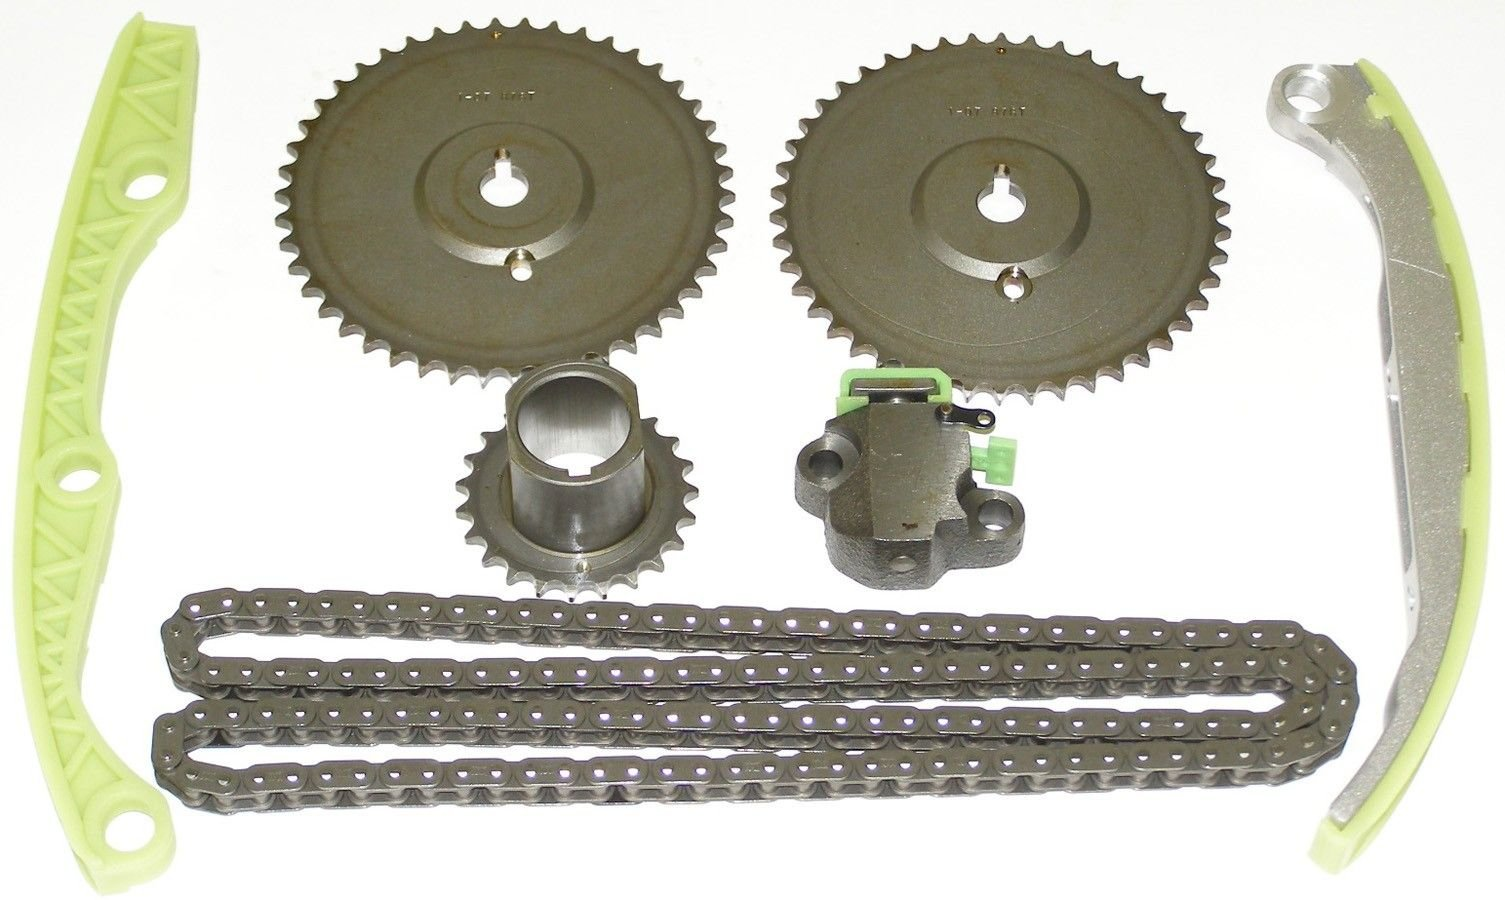 Saturn Sl2 Engine Timing Chain Kit Replacement Cloyes Victor 2001 Front 4 Cyl 19l 9 4204s Includes Cam 2 Crank Tensioner Guide